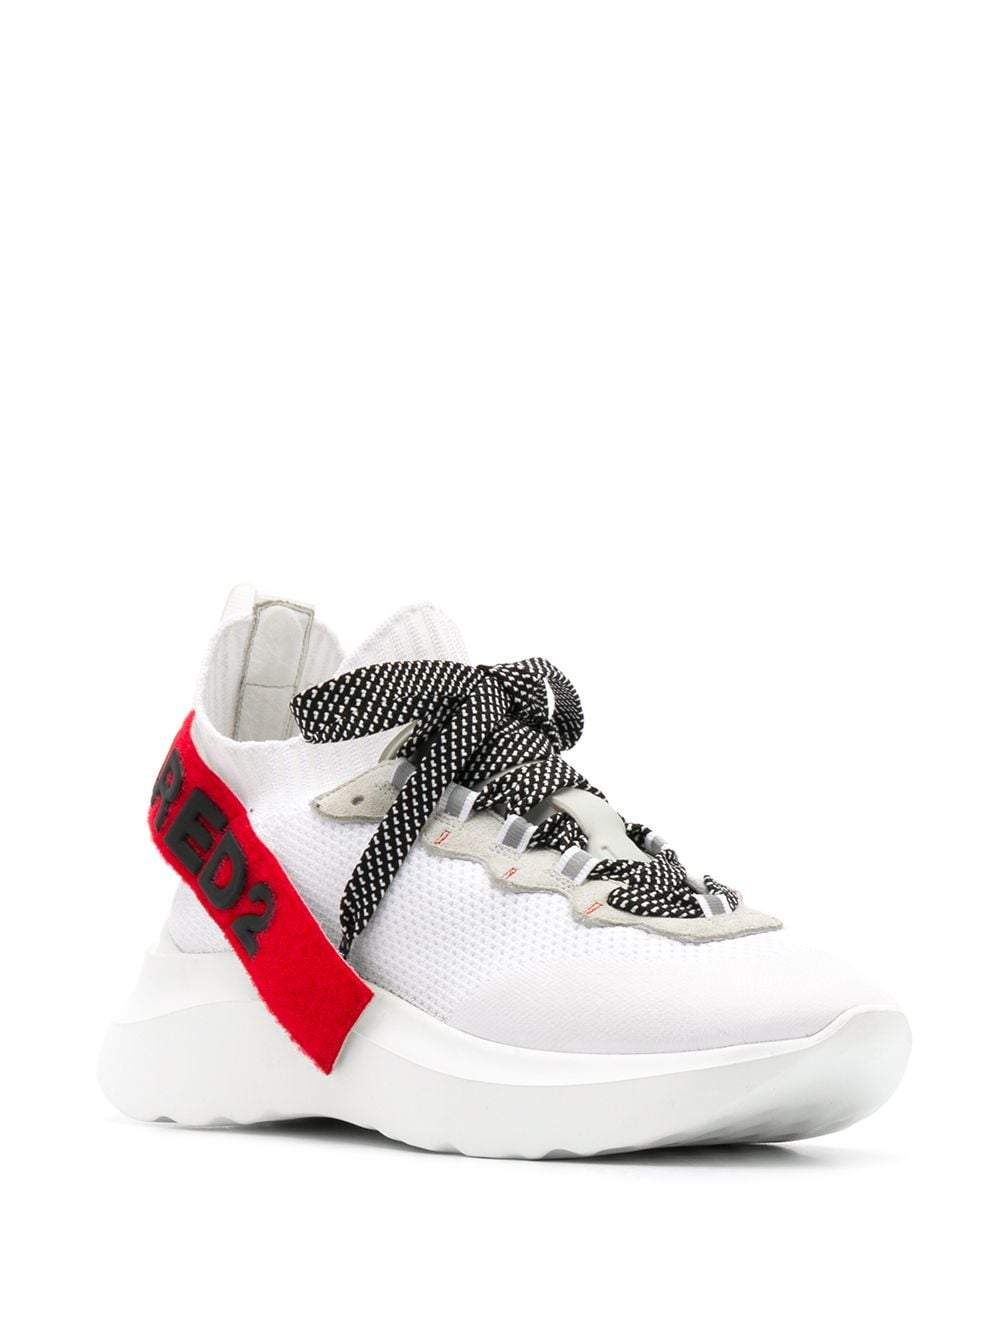 DSQUARED2 Speedster Sneakers White/Red